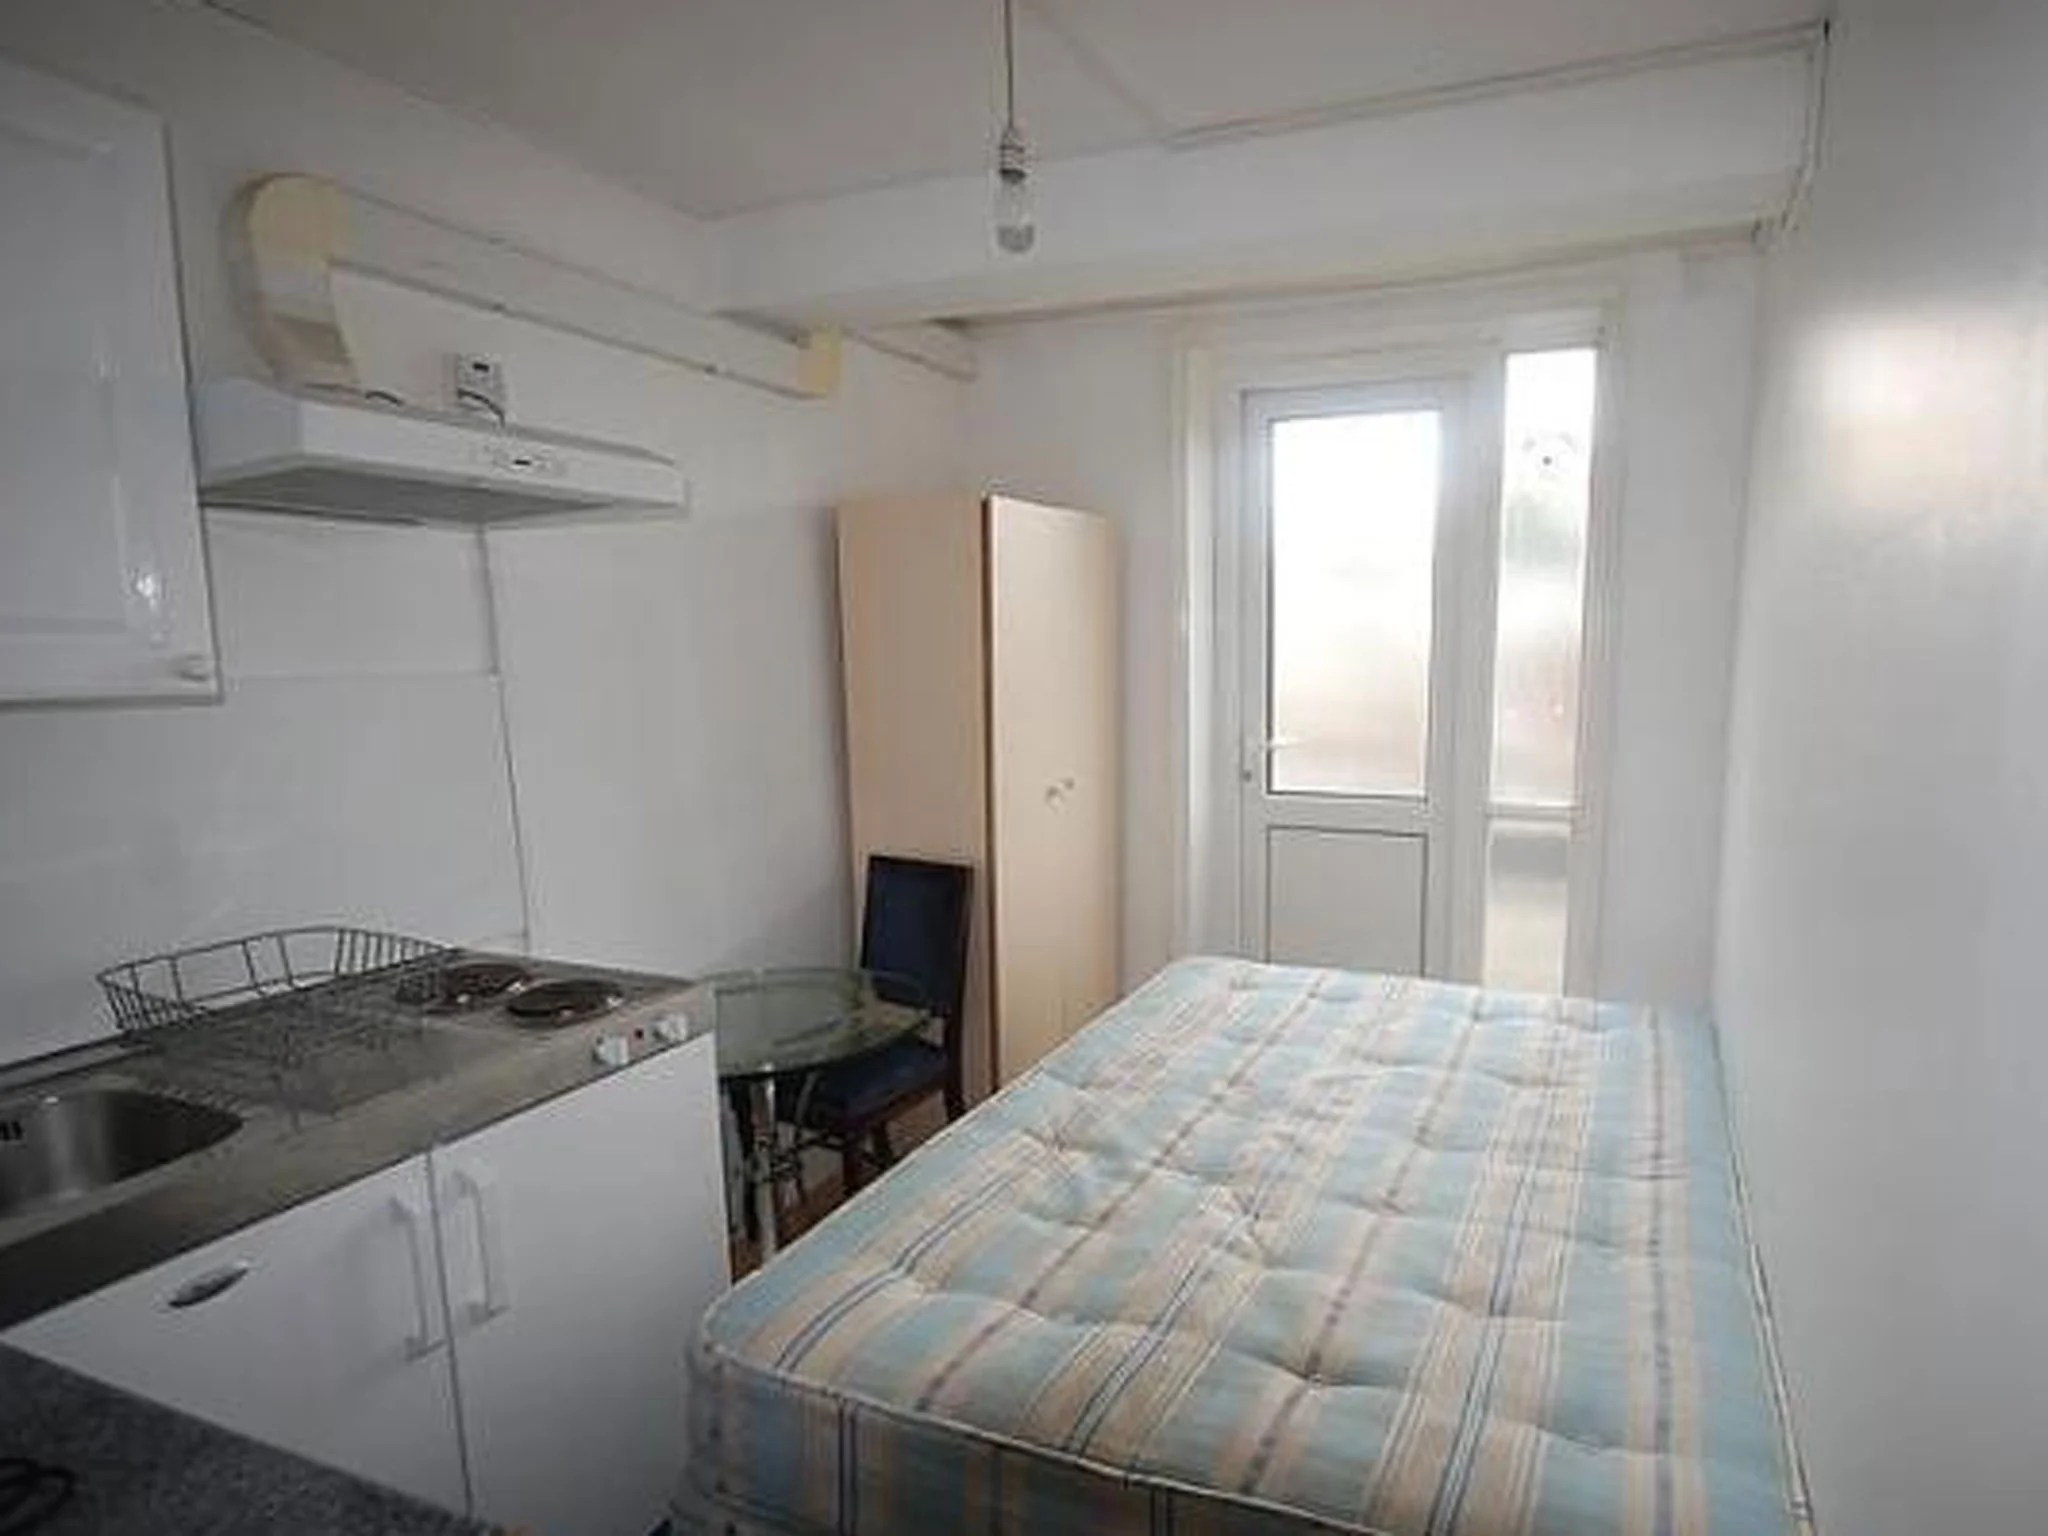 Kitchen Room Bedroom Studio Flat With Bedroom Kitchen And Shower In One Room For